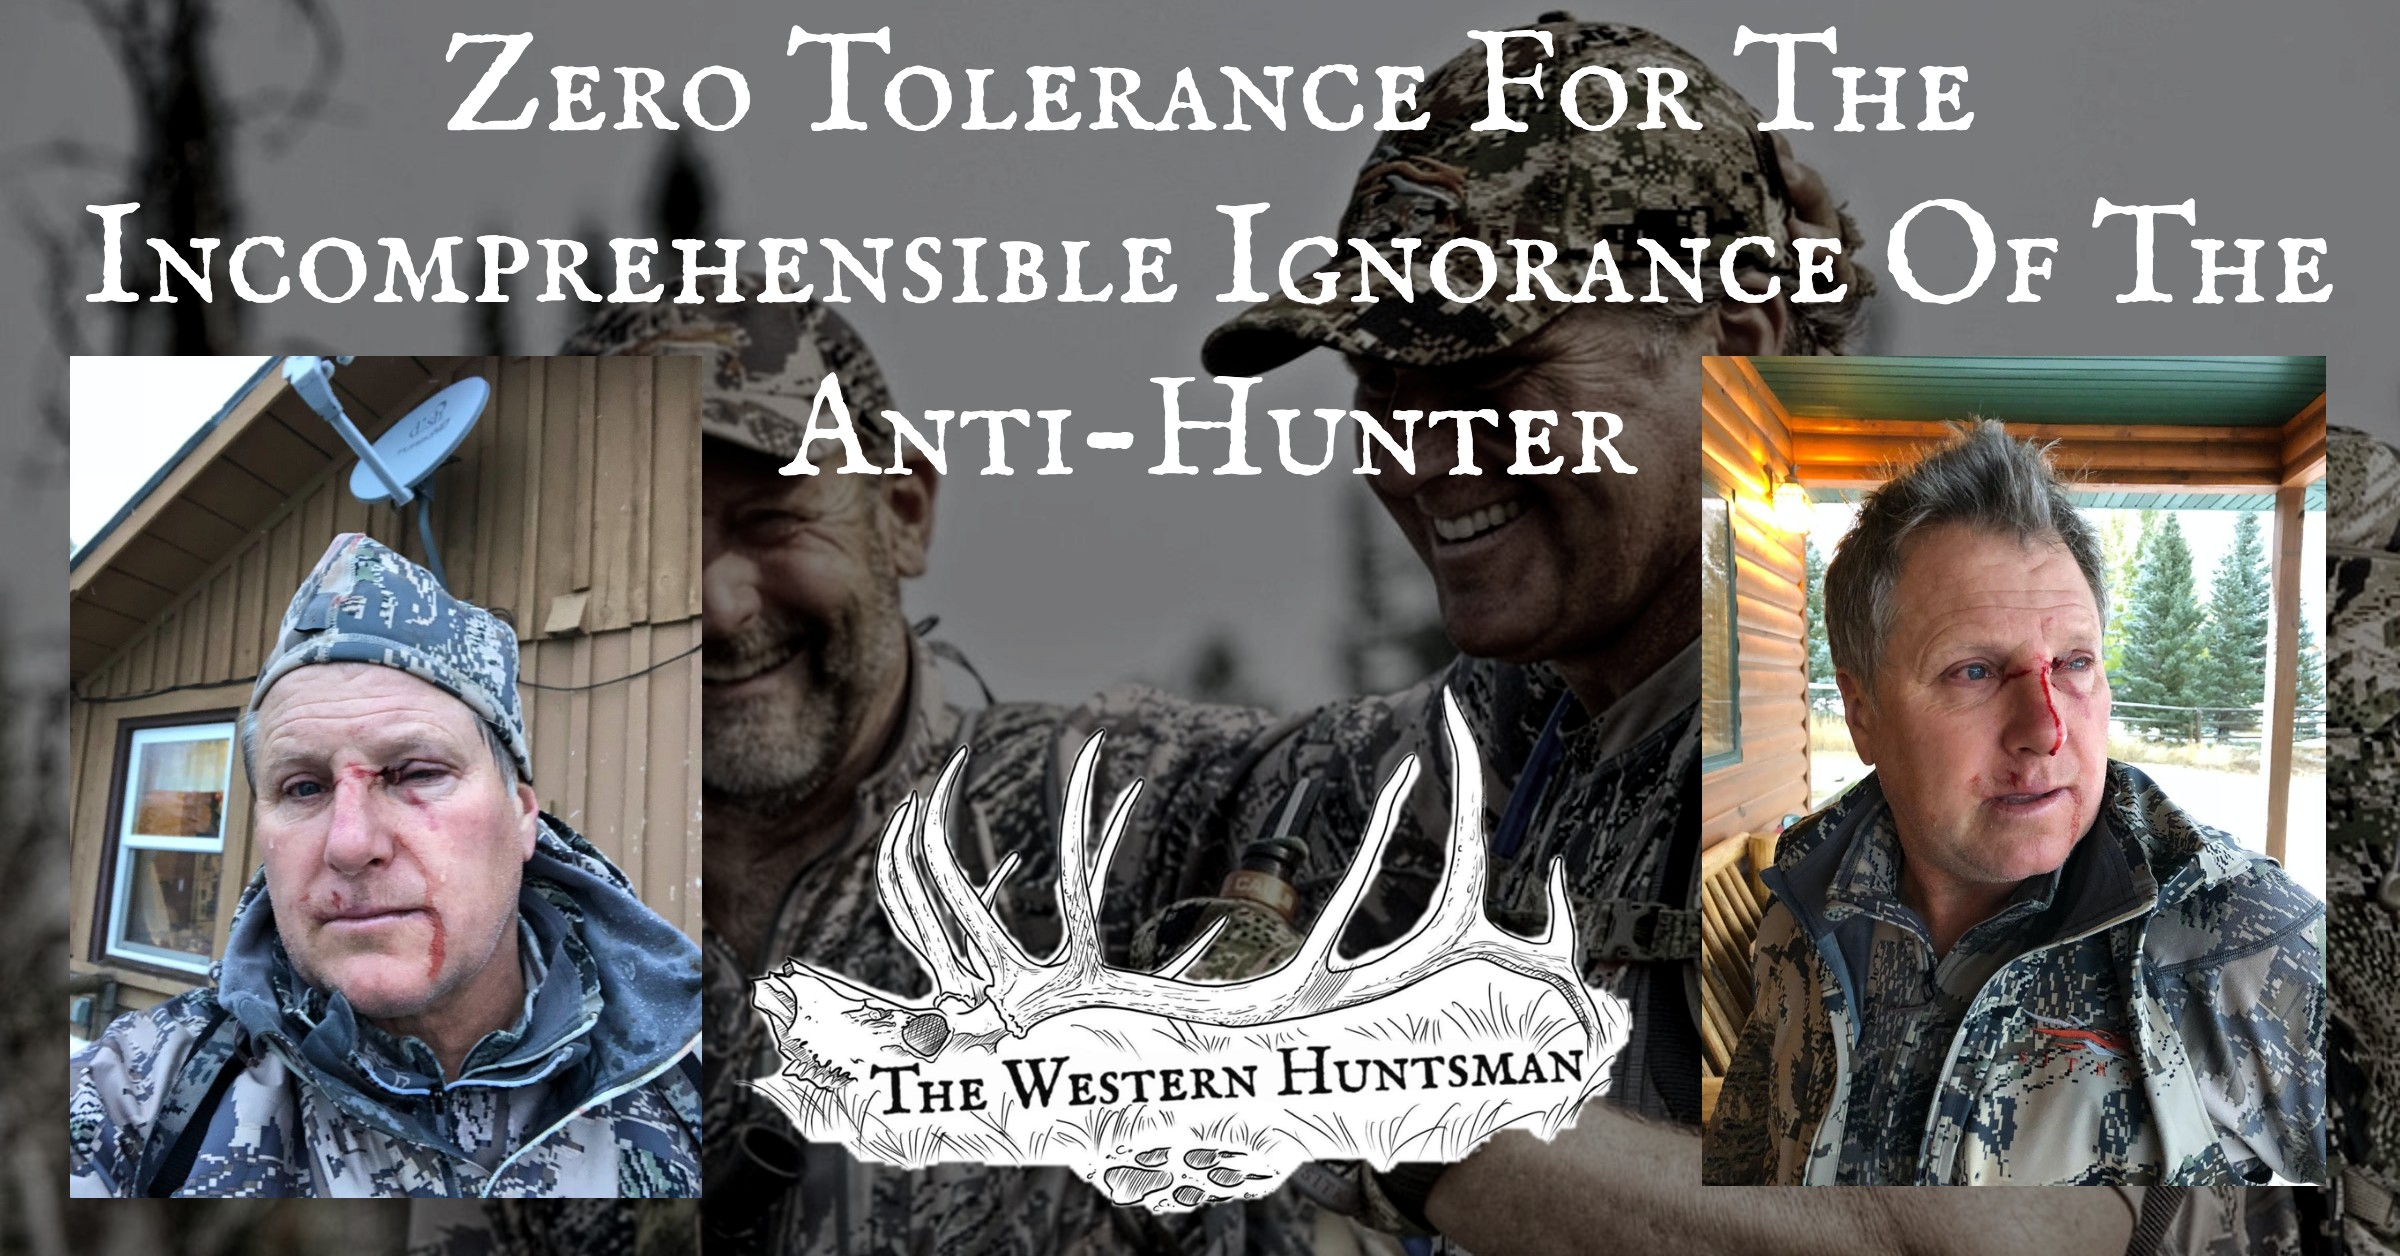 Zero Tolerance For The Incomprehensible Ignorance Of The Anti-Hunter